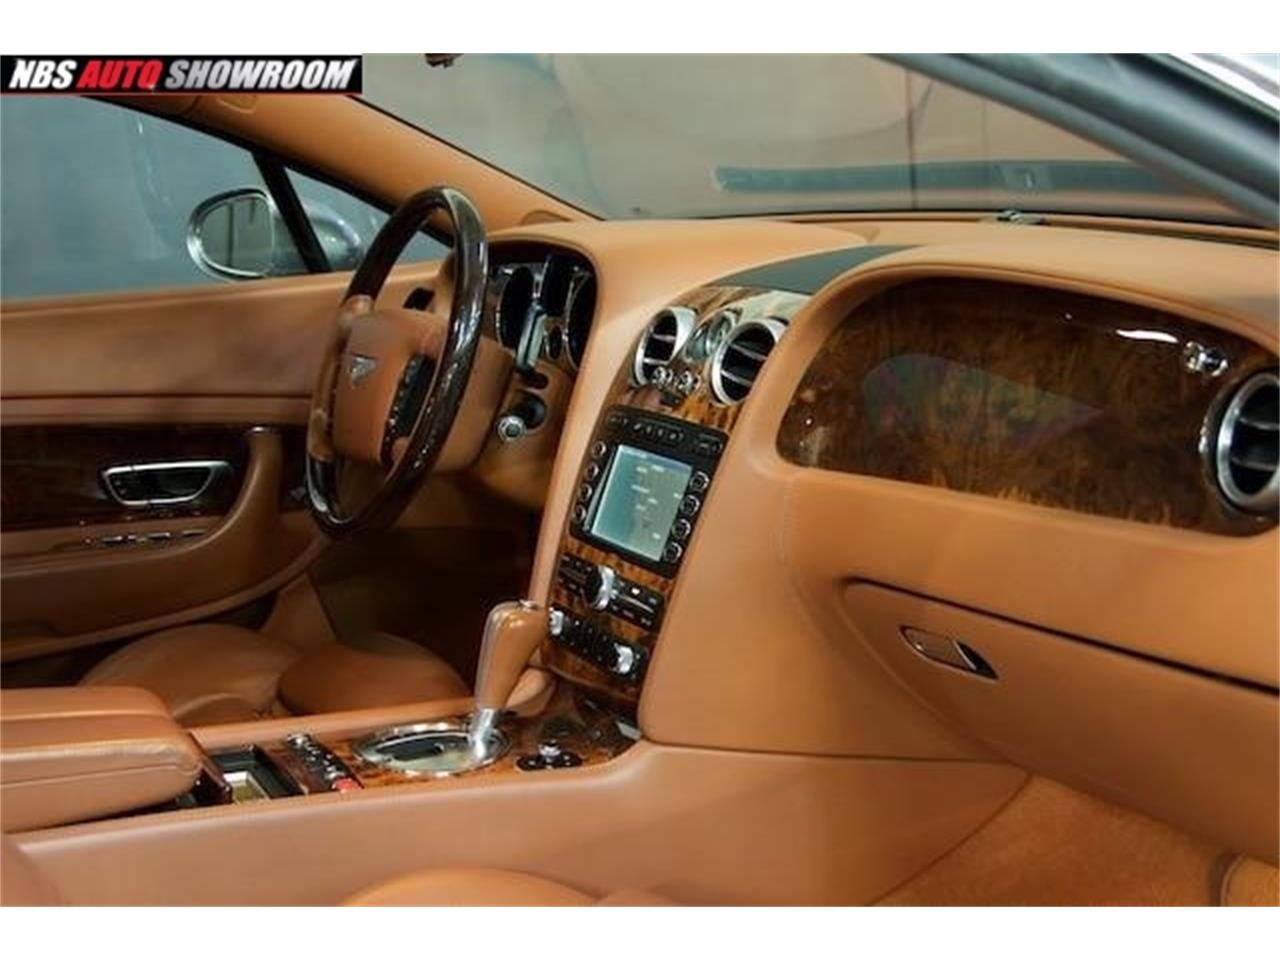 Large Picture of 2006 Bentley Continental located in California - $41,000.00 Offered by NBS Auto Showroom - L512